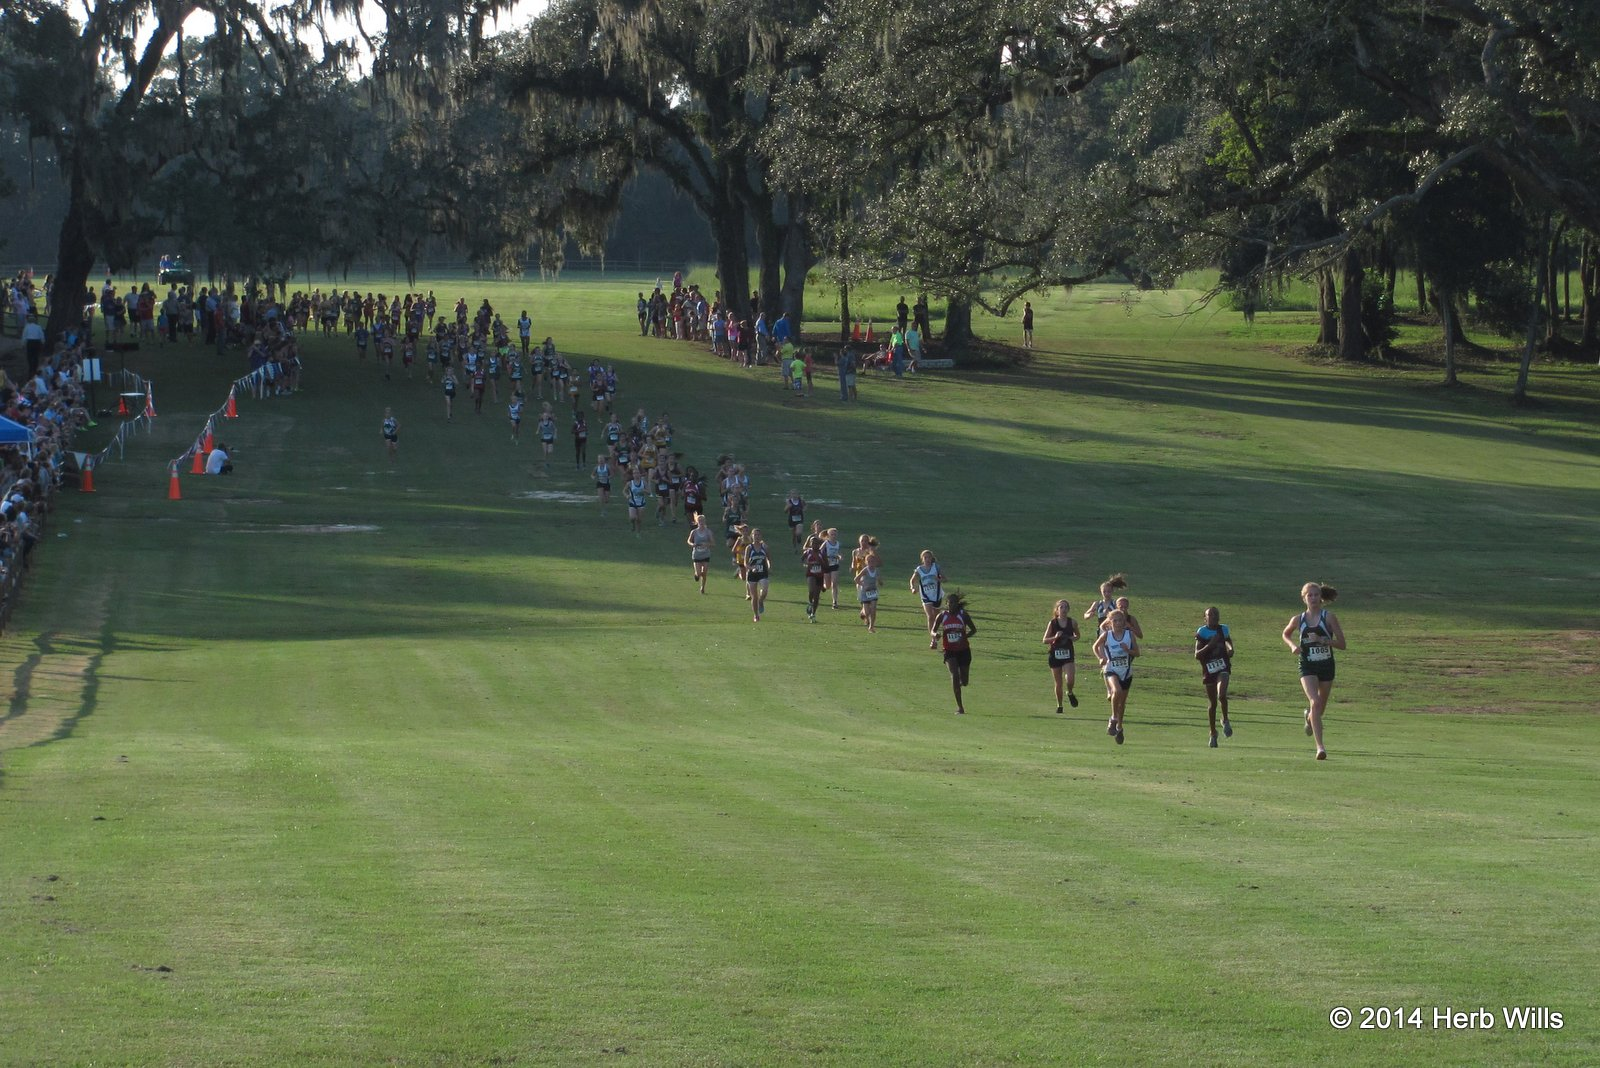 2015 cross country regional meet